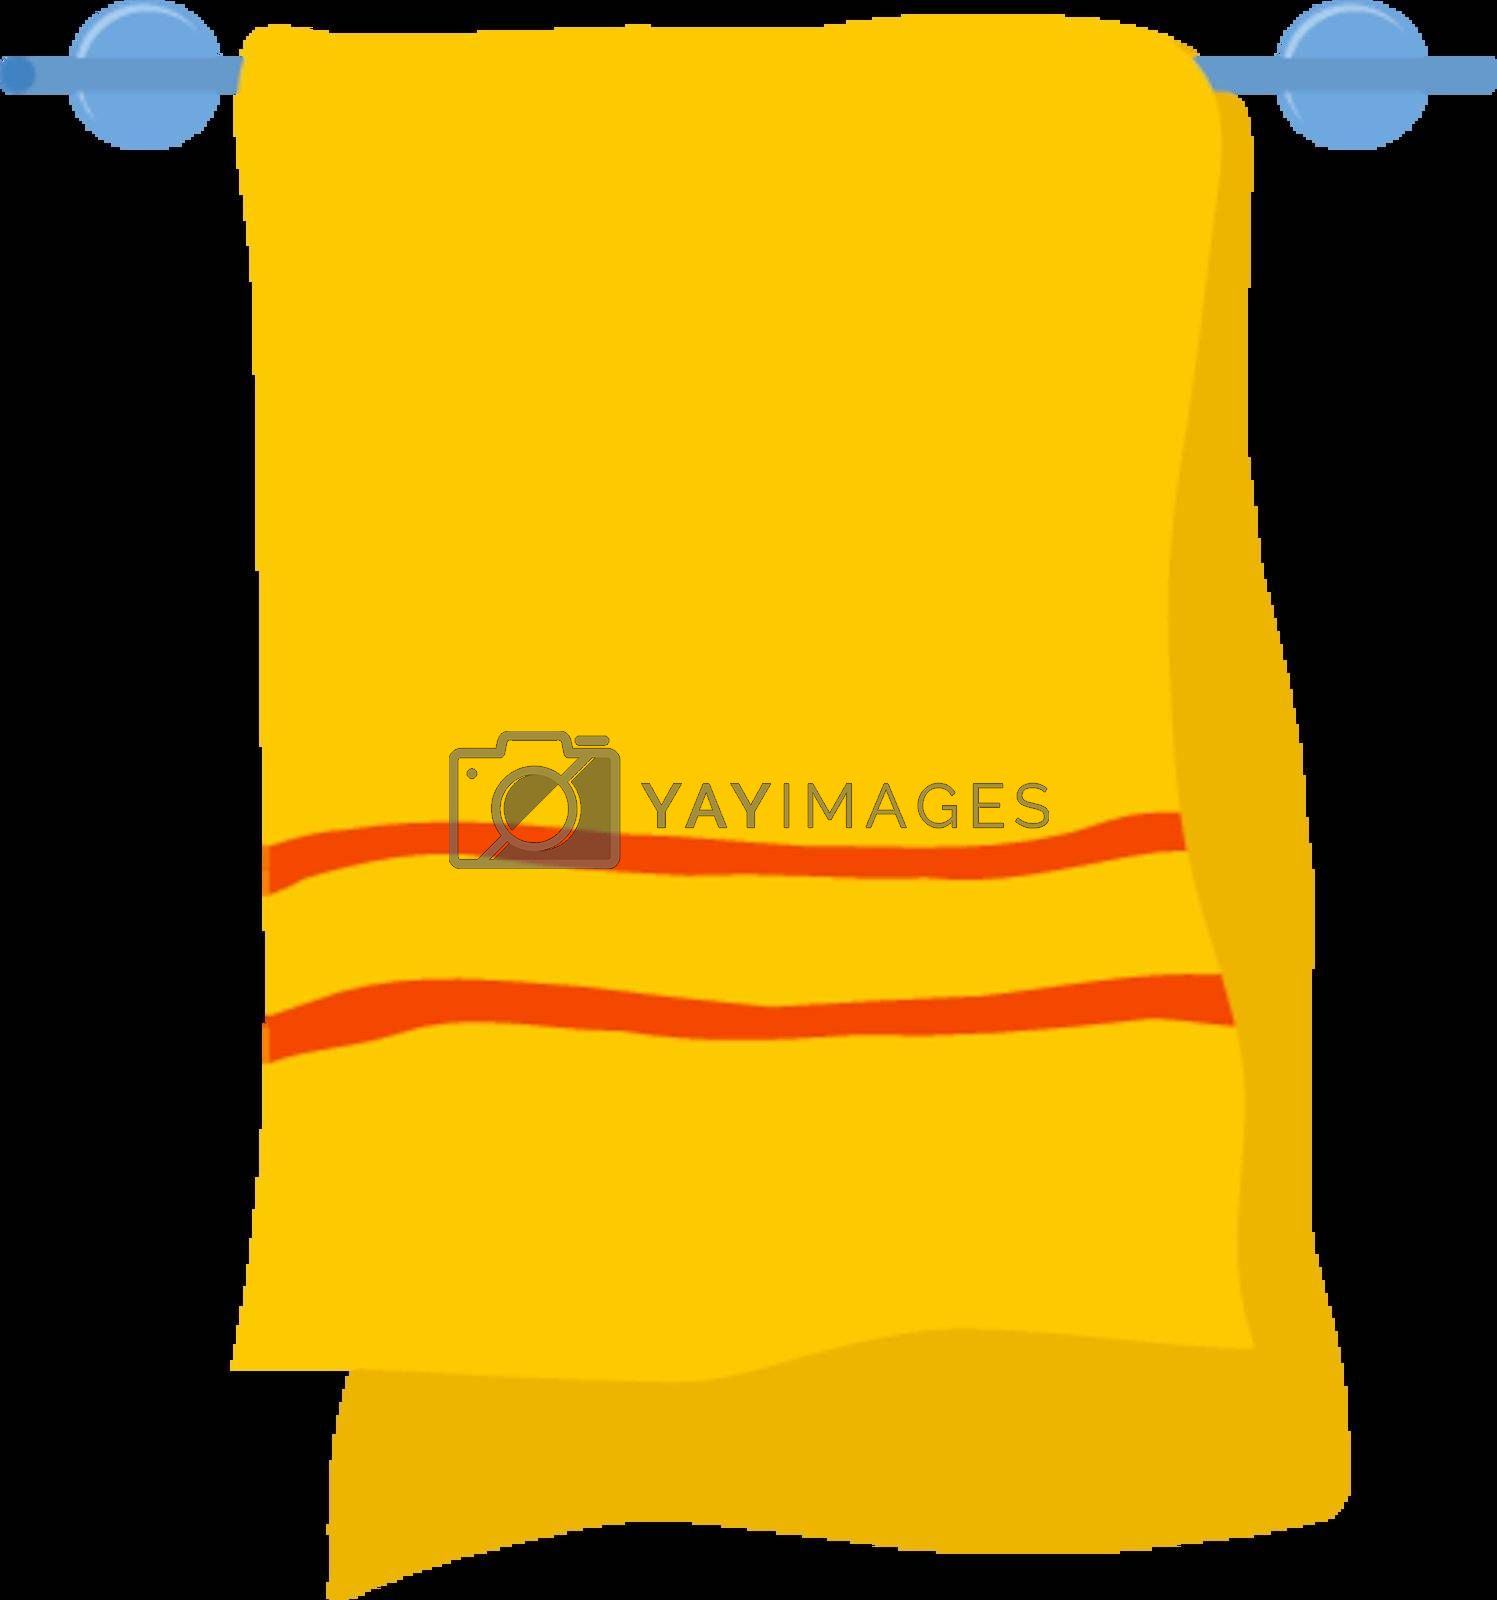 Royalty free image of Towel on a hanger by Perysty